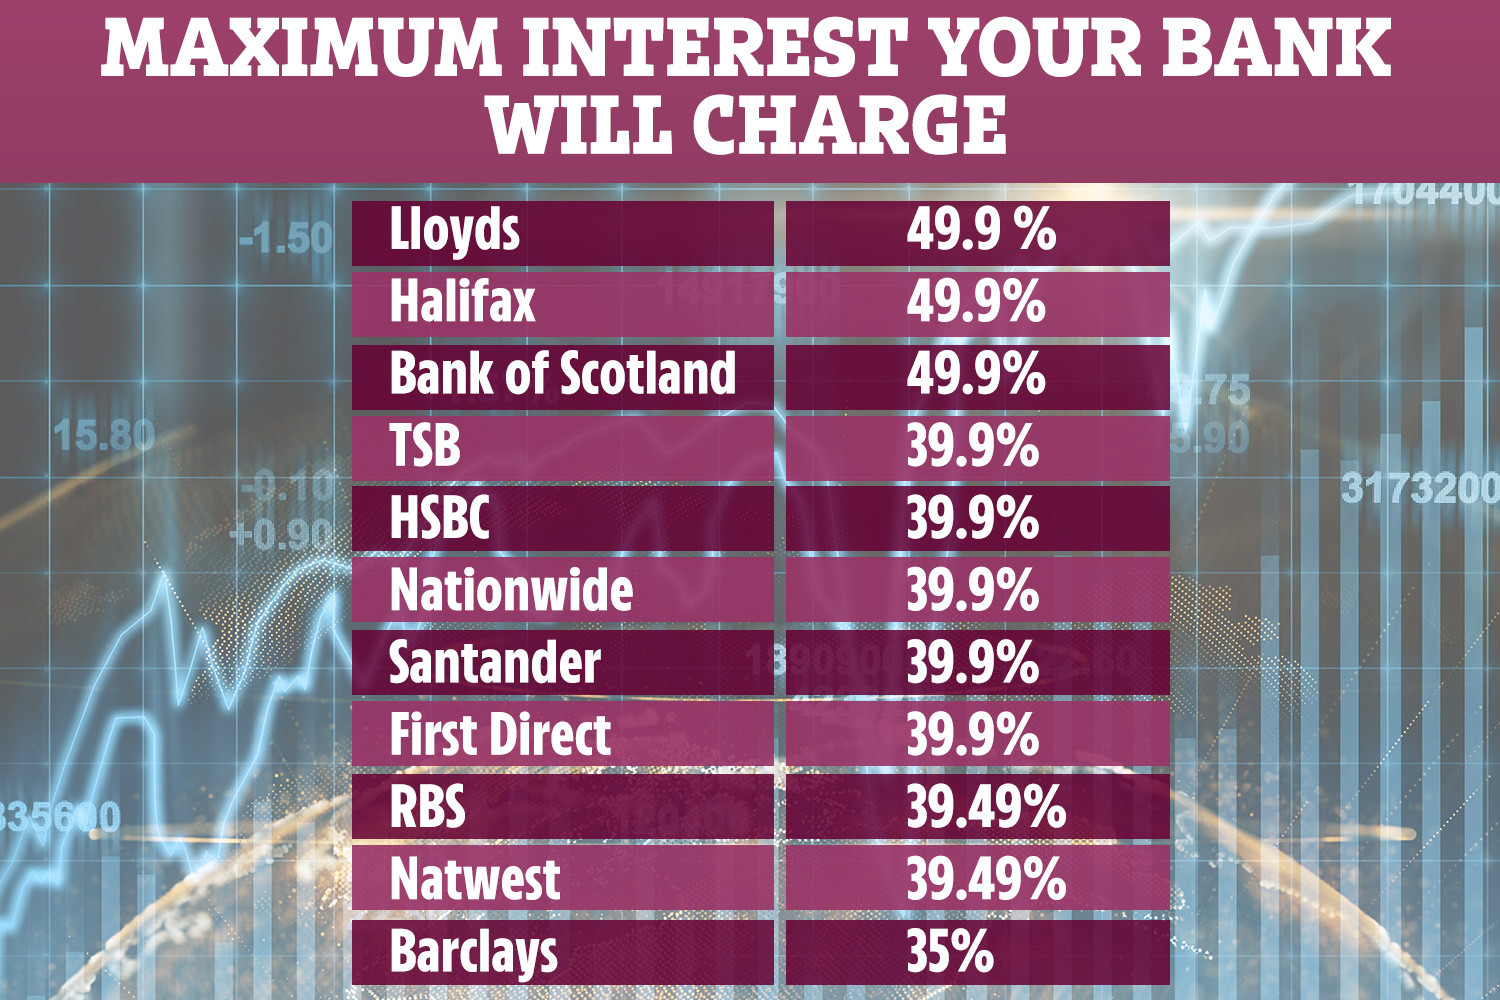 Banks are increasing overdraft rates in response to new rules